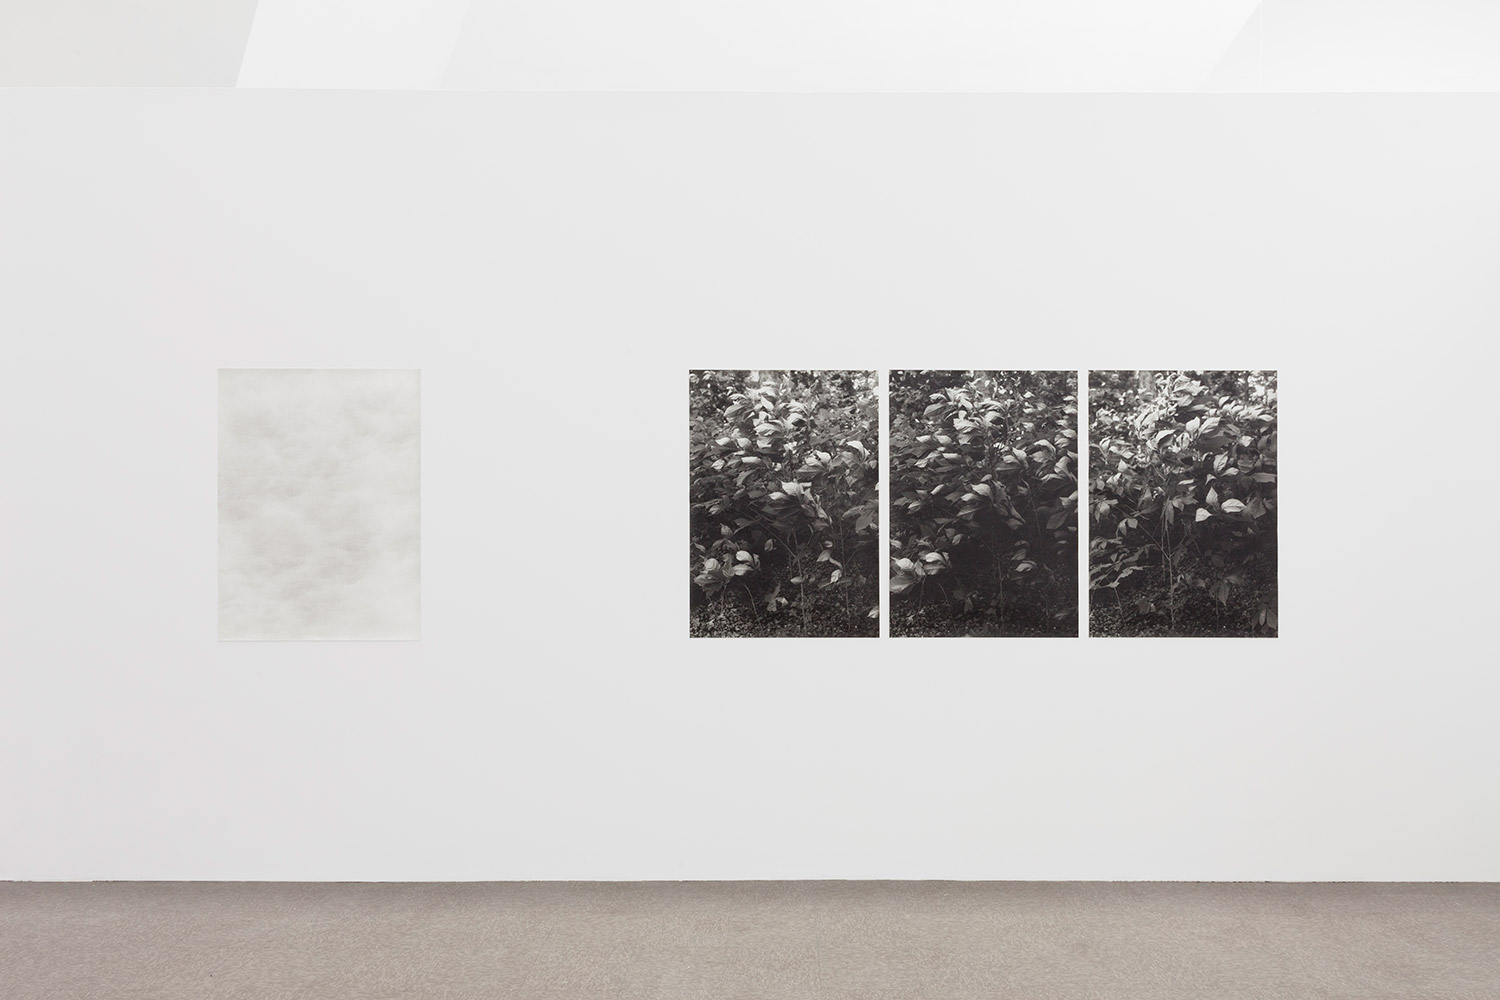 Two printed works hanging on a wall, one of clouds faintly distinct from the wall, the other a triptych of leaves from a bush